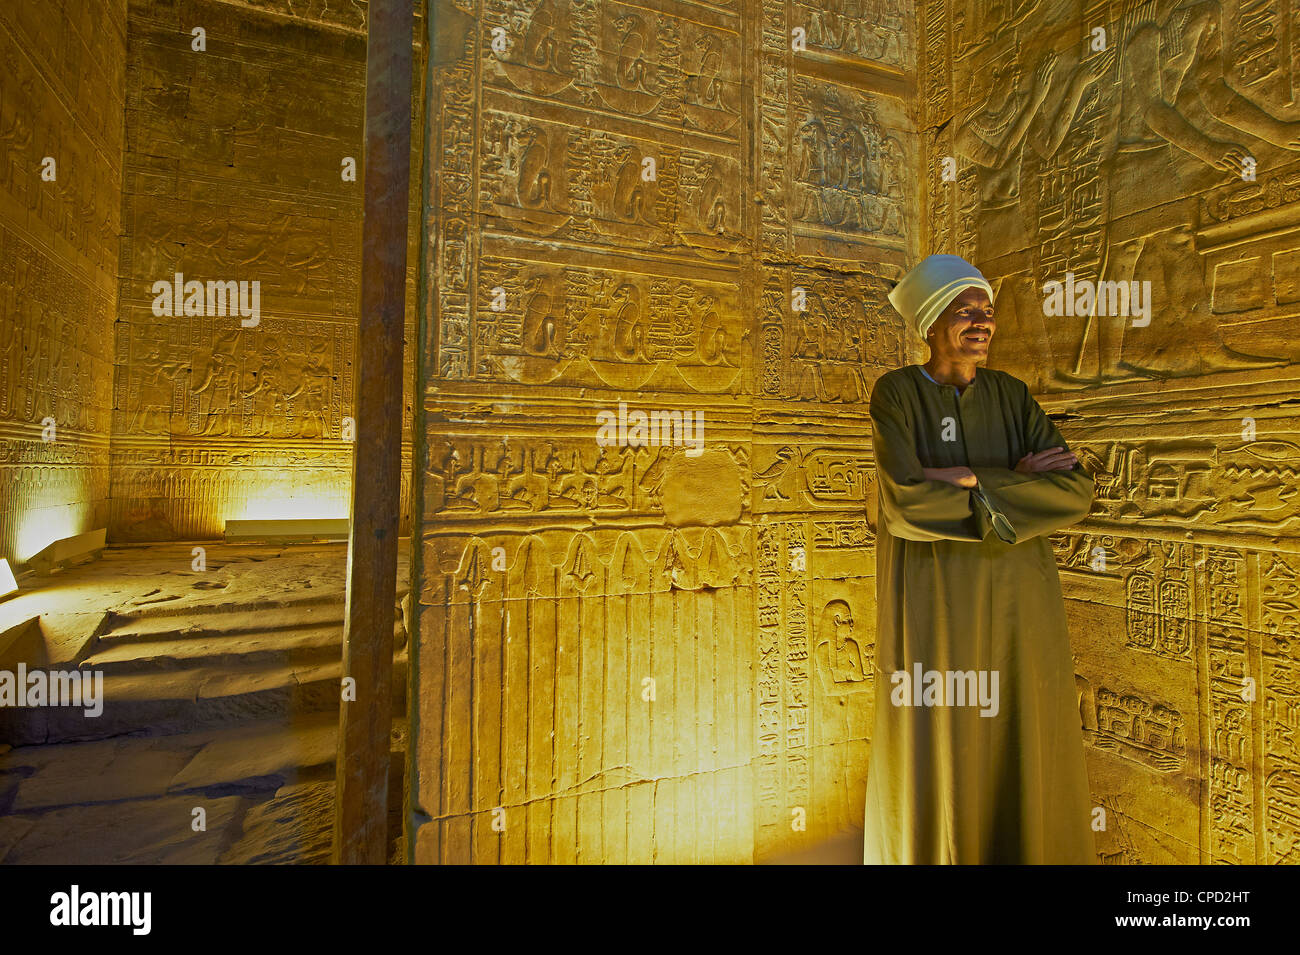 Bas relief on the walls of the Temple of Horus, Edfu, Egypt, North Africa, Africa - Stock Image